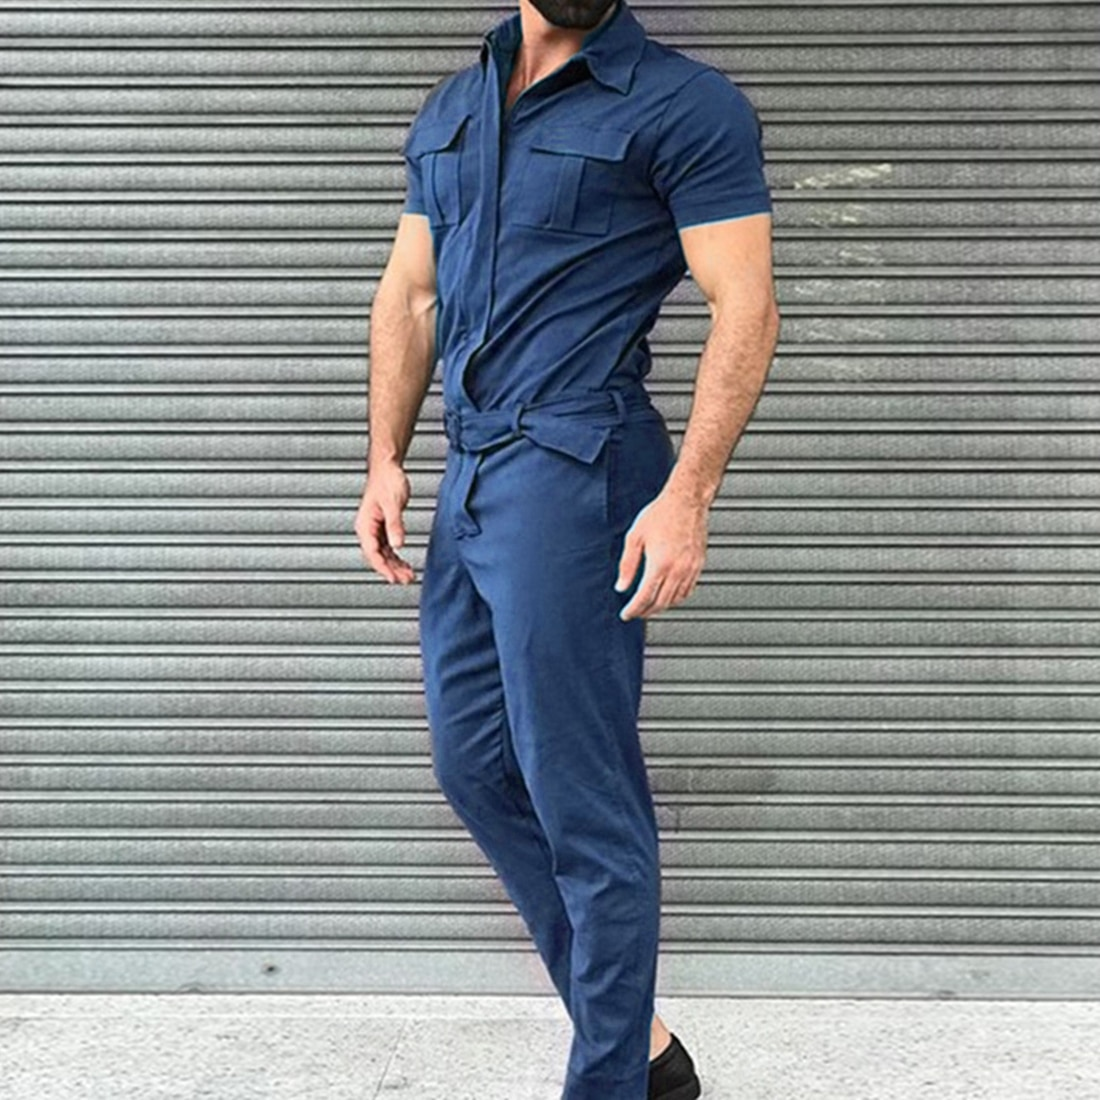 Mens Overalls Streetwear Lapel Short Sleeve Rompers Cargo Pants